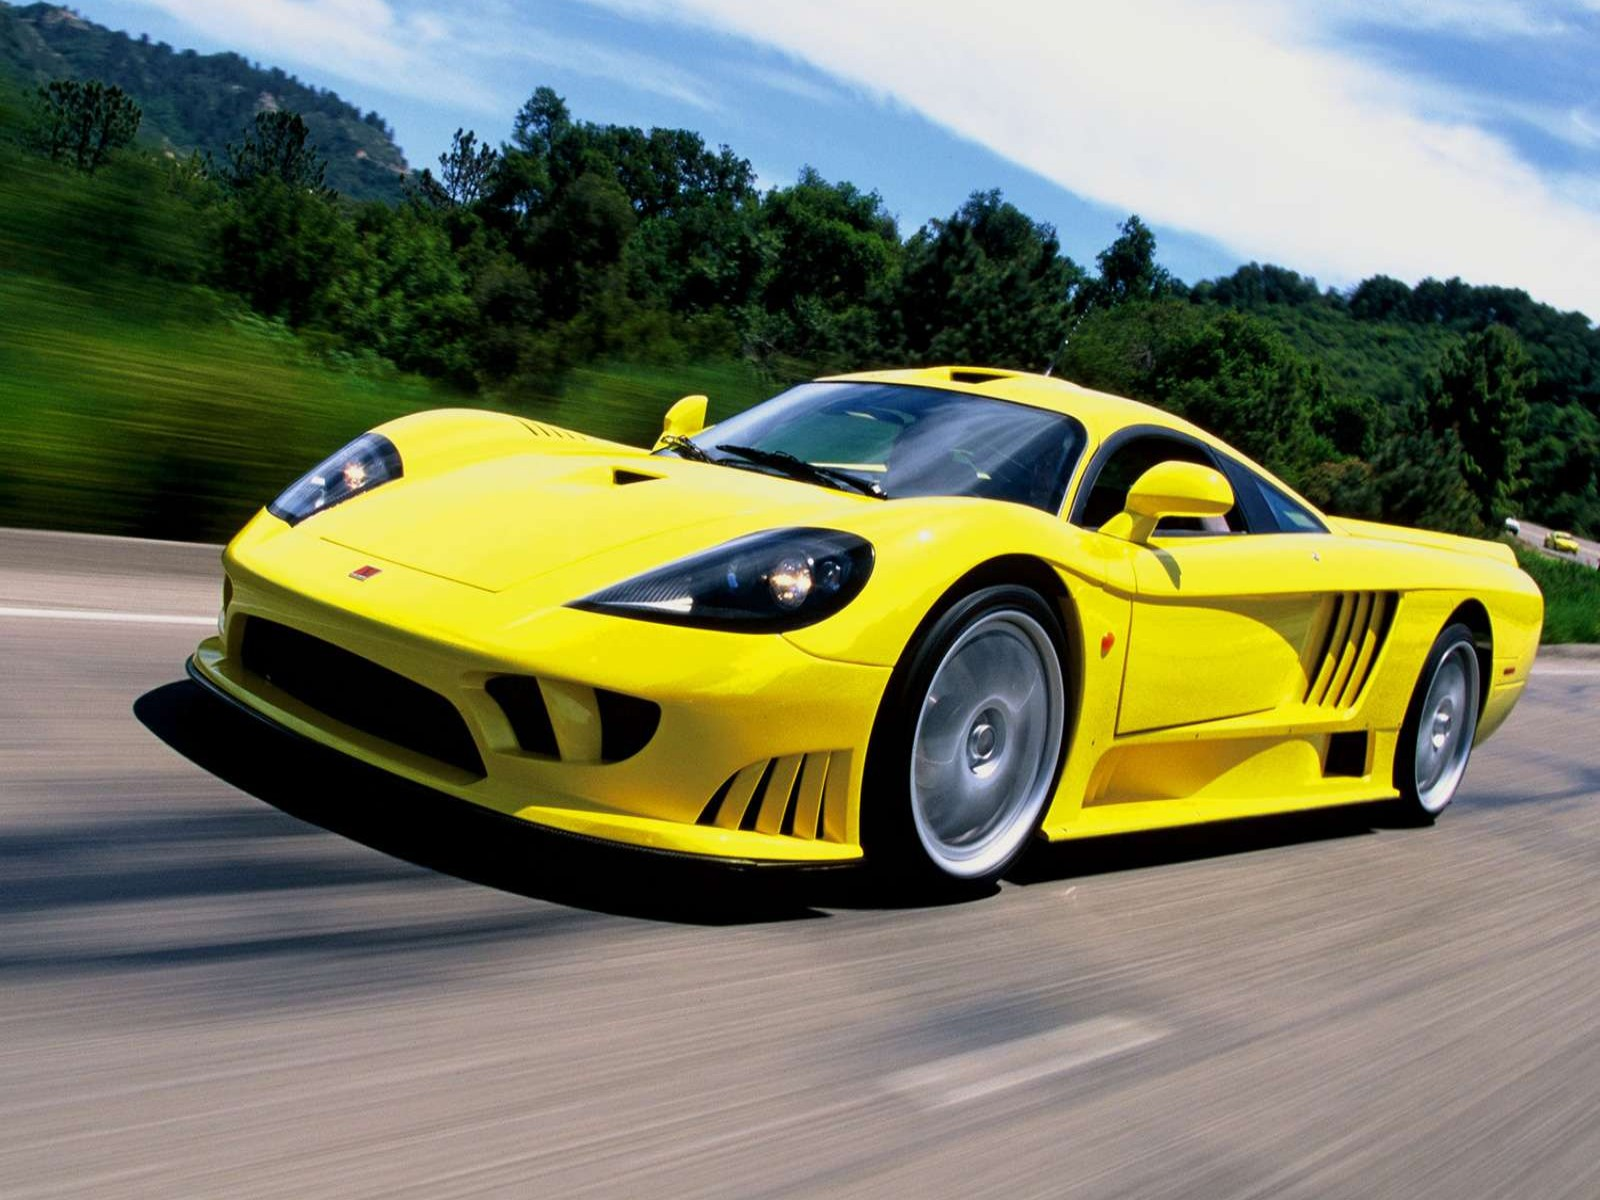 Car And Car Zone: Saleen S7 2002 new cars, car reviews ...